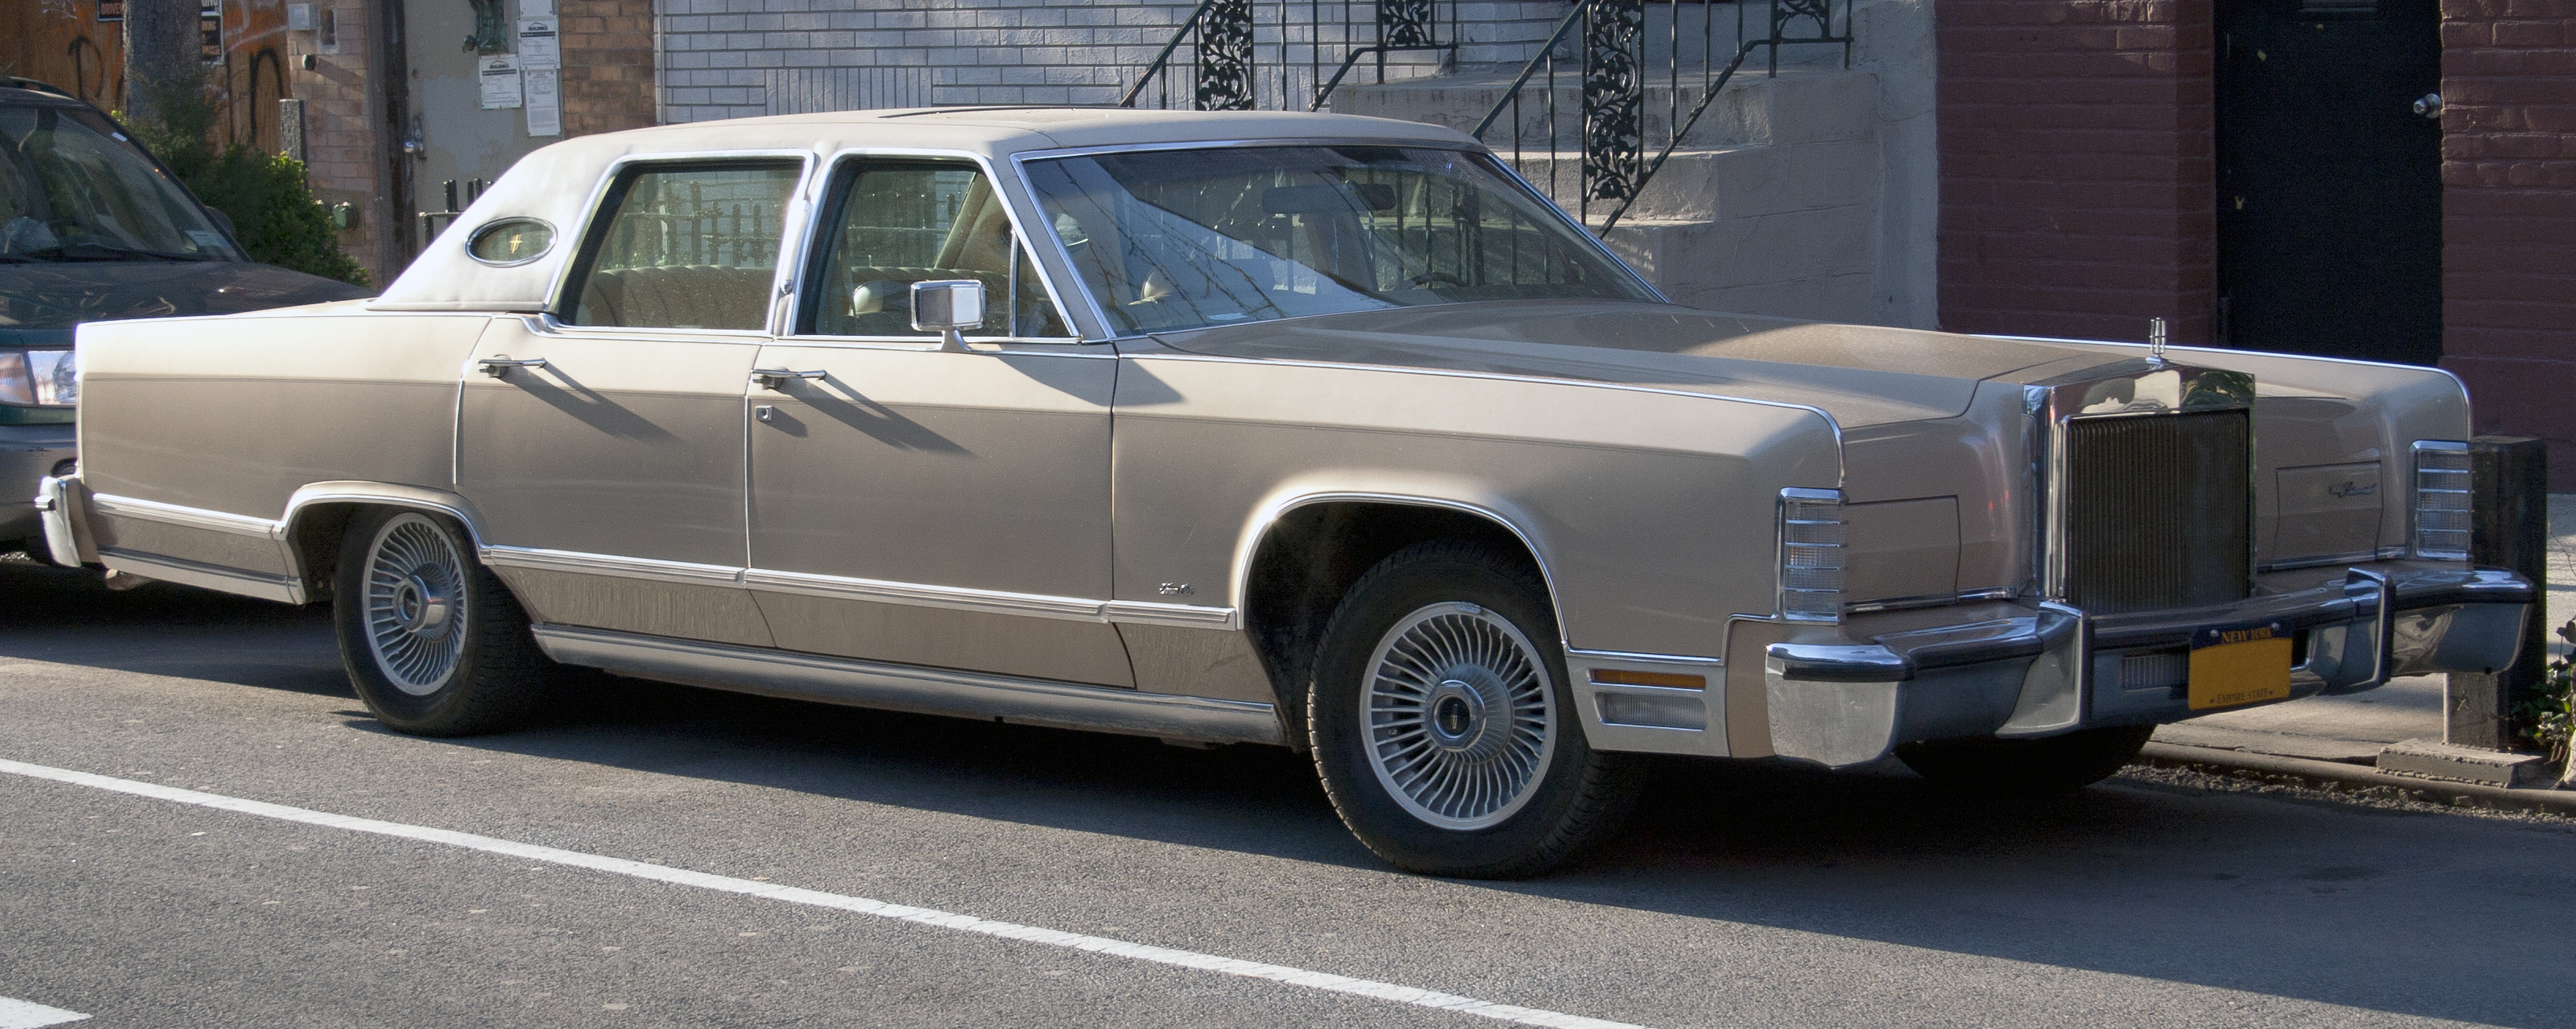 File 1979 Lincoln Town Car In Fading Sun Jpg Wikimedia Commons